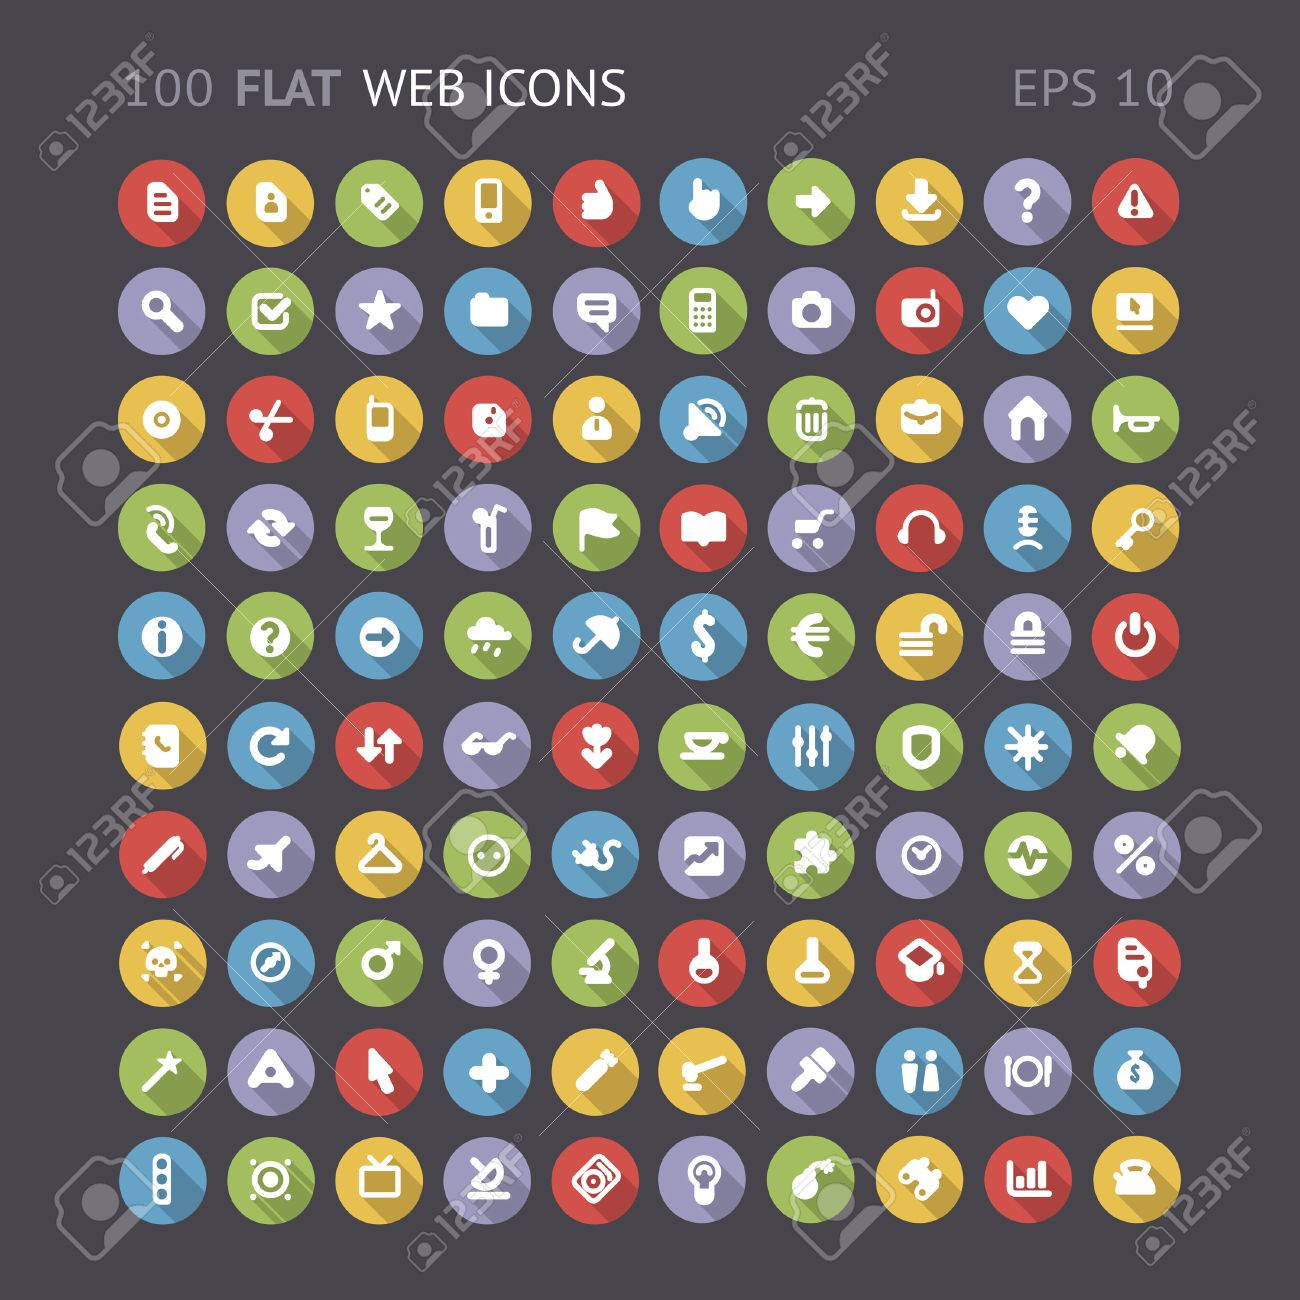 100 Flat web interface icons contains objects with transparency - 27316812